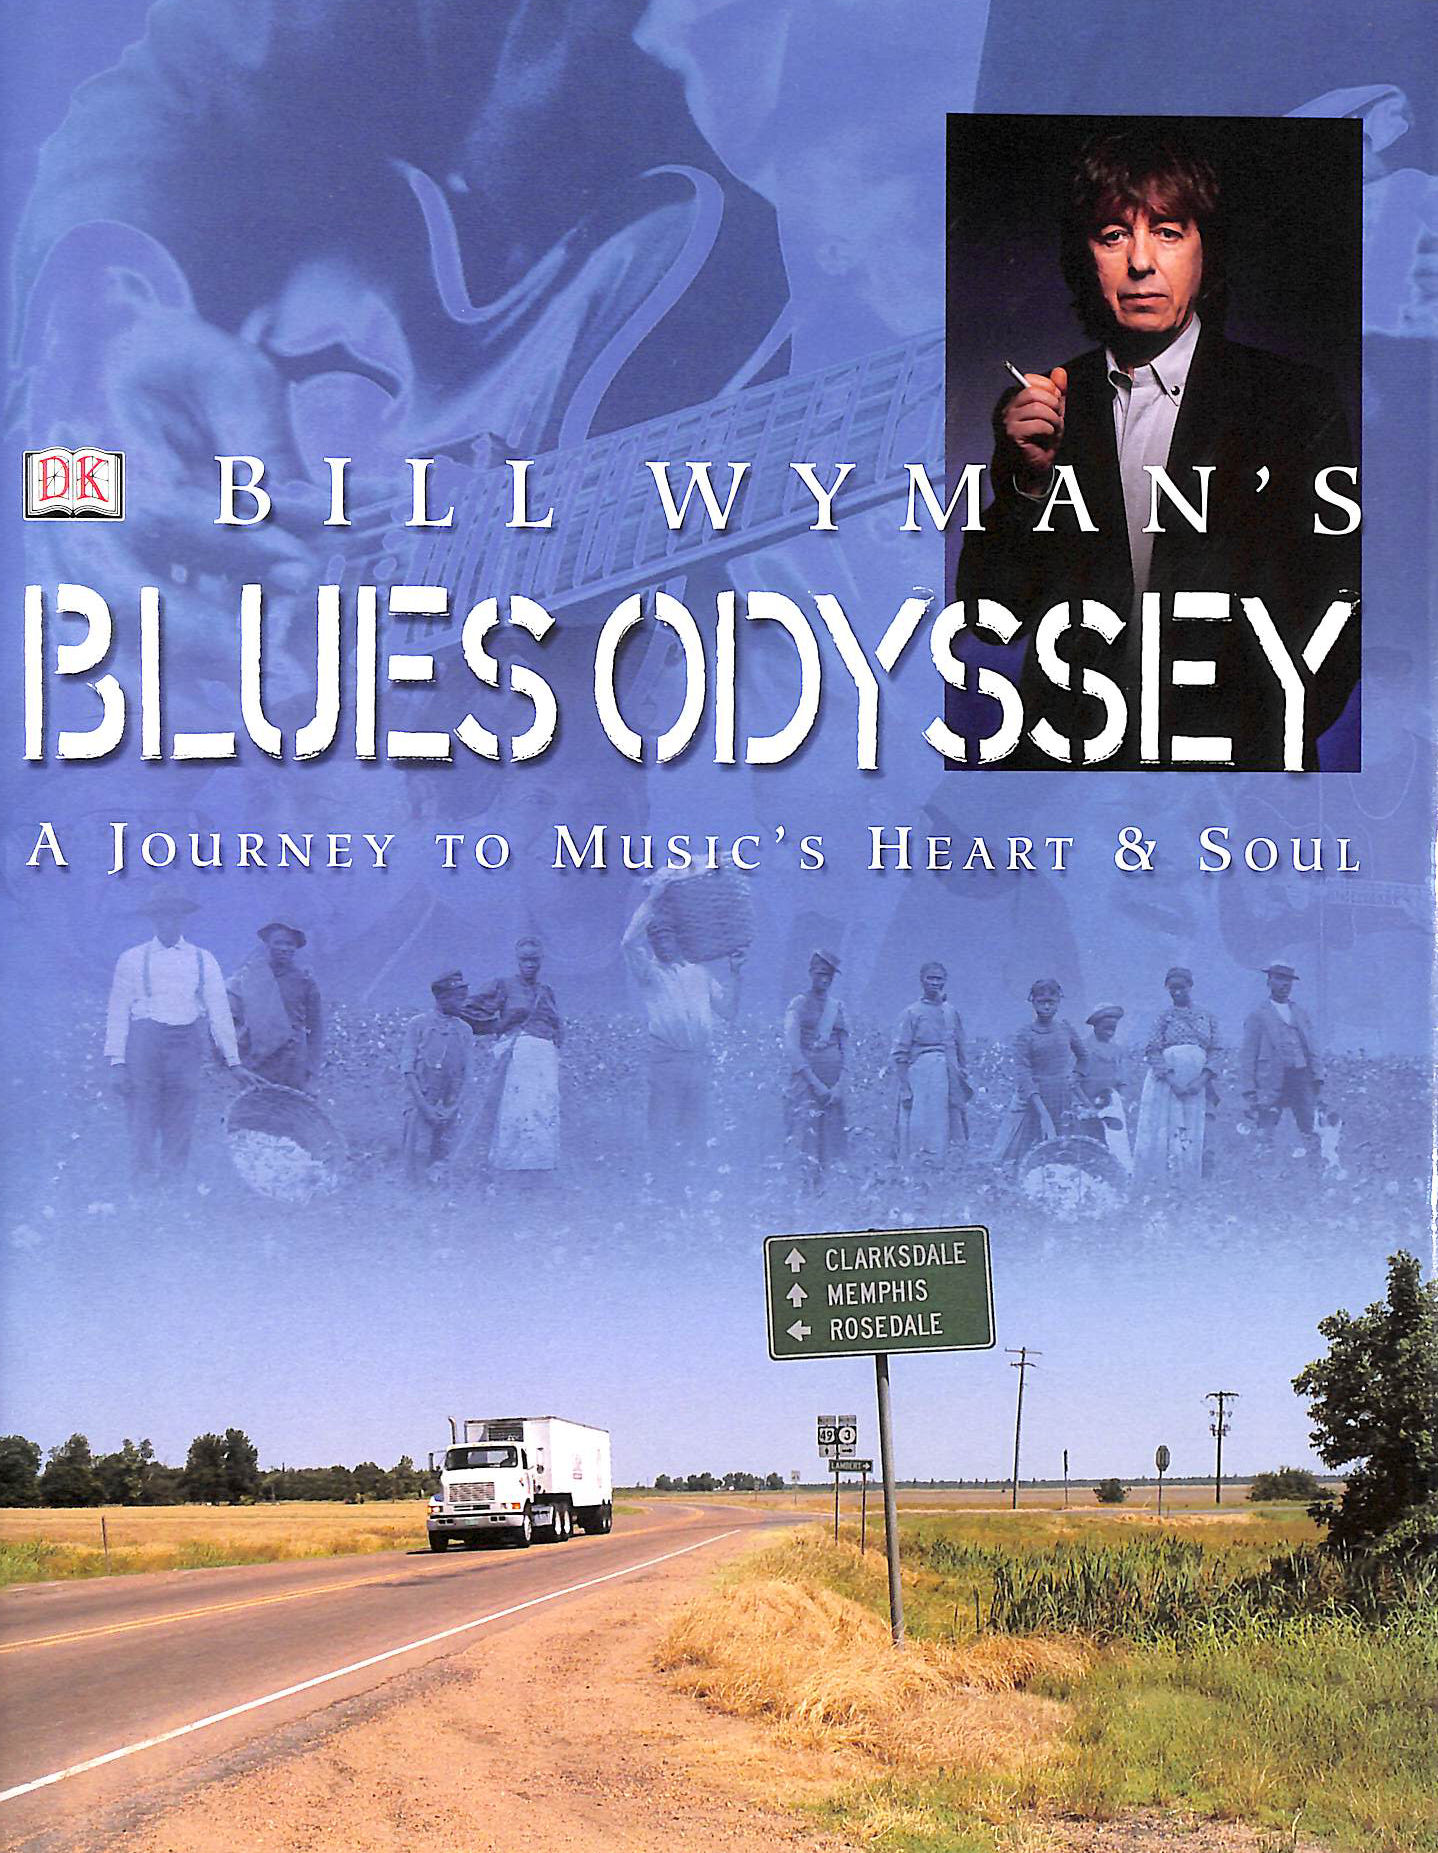 Image for Bill Wyman's Blues Odyssey: A Journey to Music's Heart and Soul